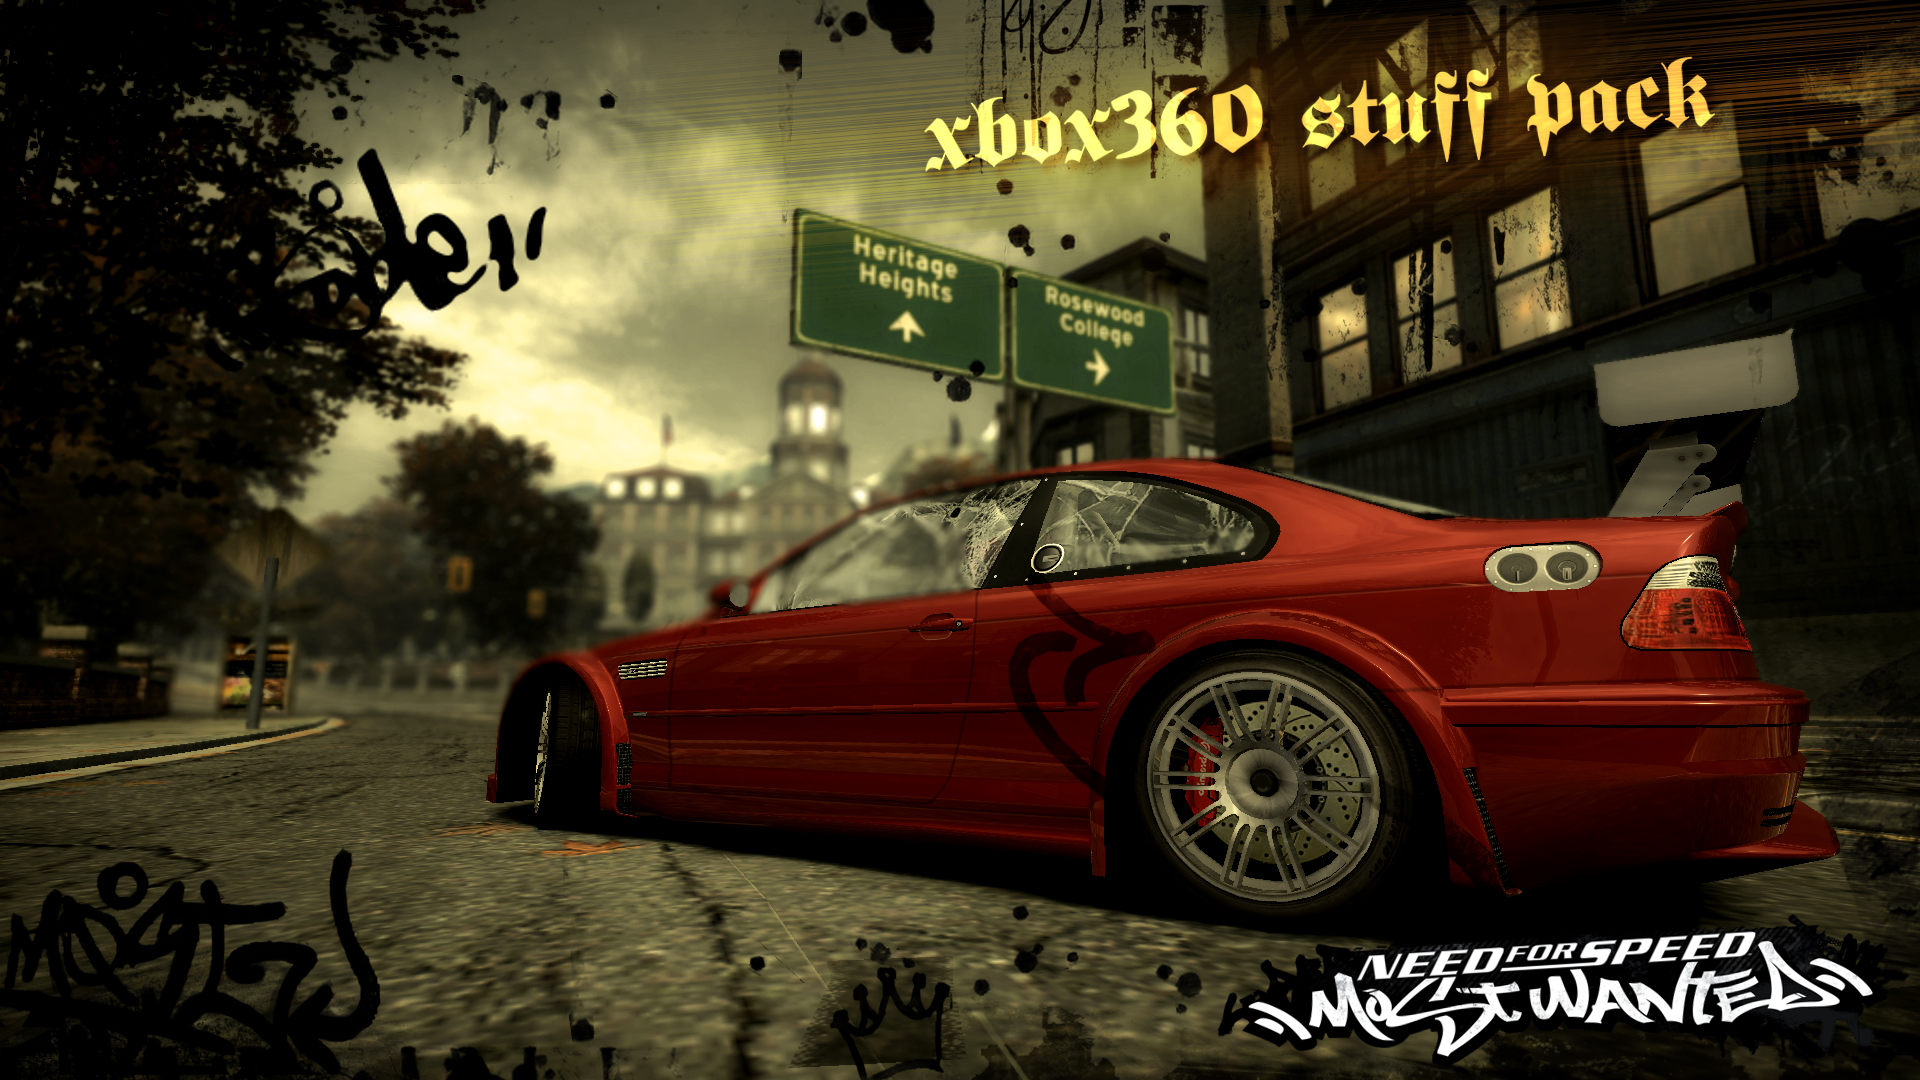 Nfsmods Xbox360 Stuff Pack